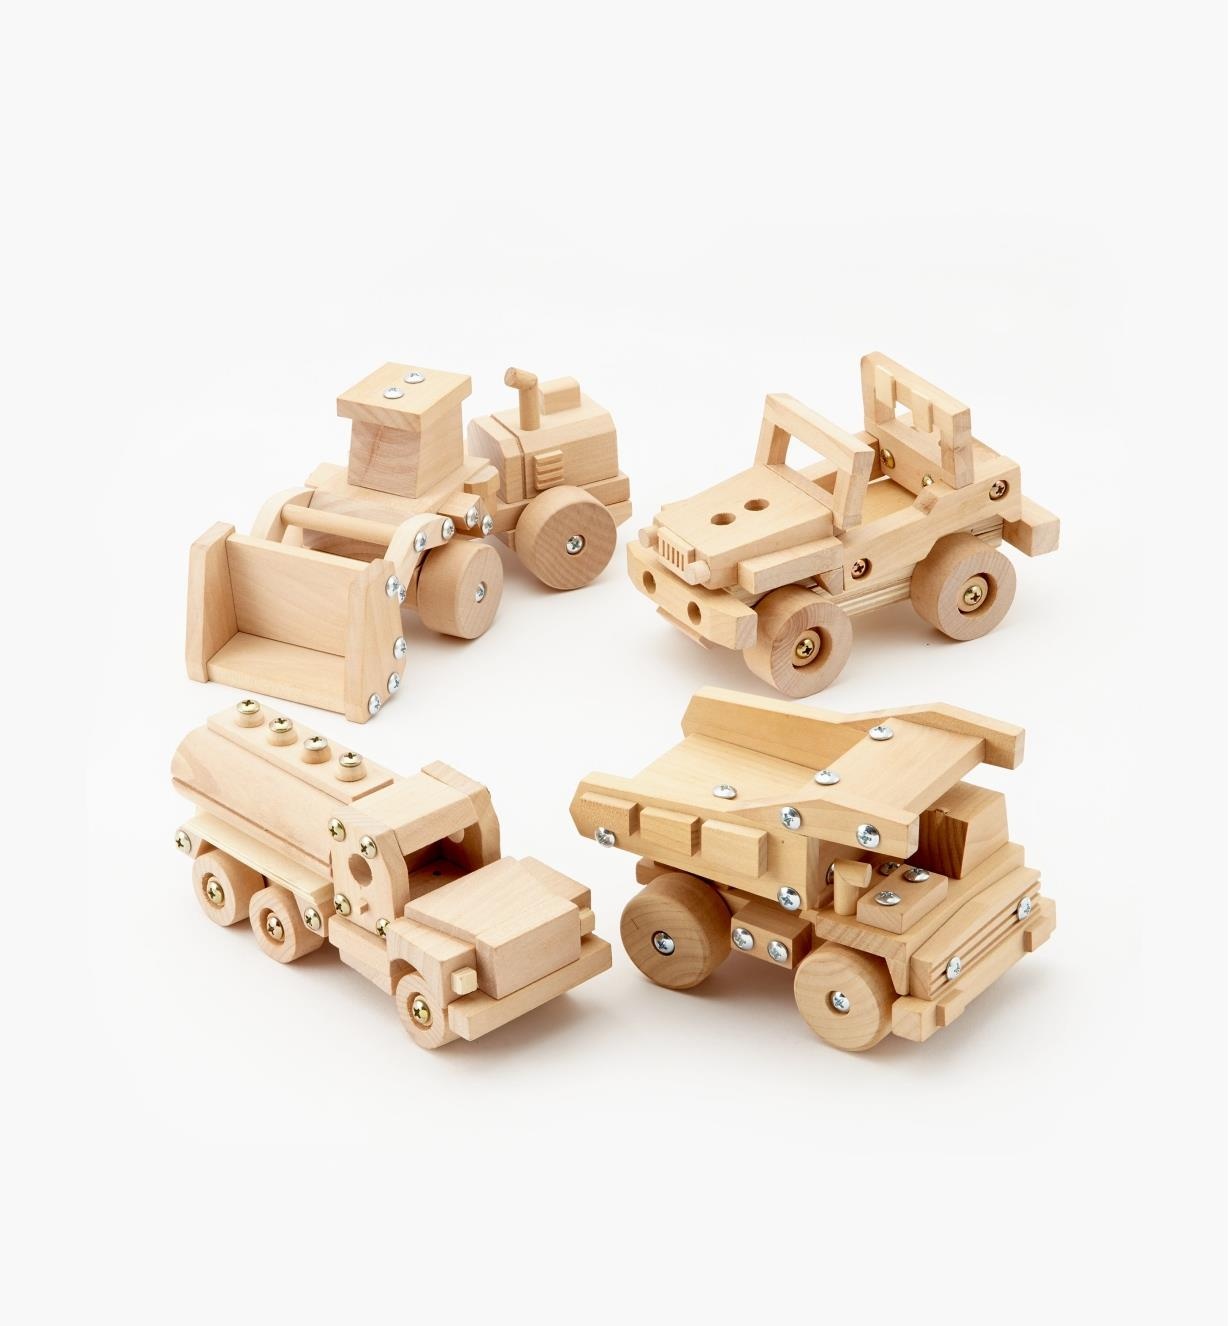 09A0560 - Set of 4 Easy-To-Build Wooden Toy Kits (Tanker Truck, Off-Road Vehicle, Dump Truck, Front-End Loader)